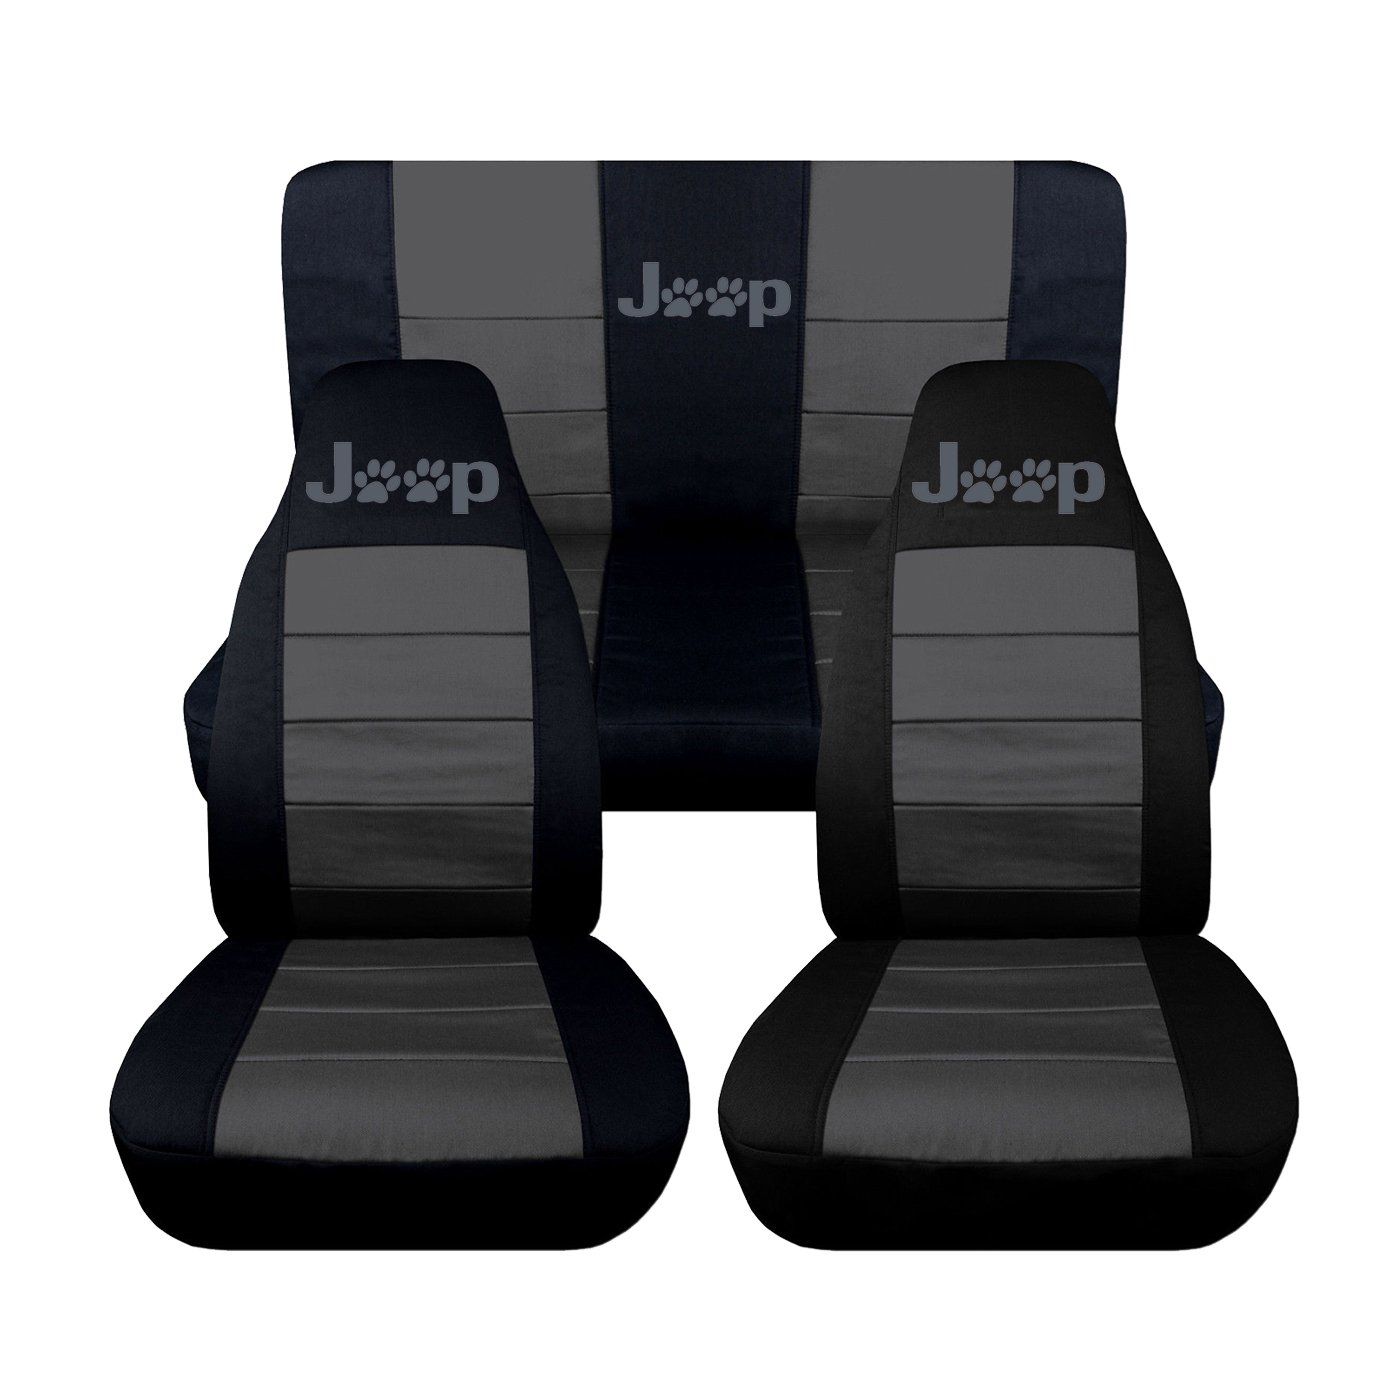 Designcovers Fits 1987 to 1995 Jeep Wrangler YJ Paw Prints 22 Color Variations Black